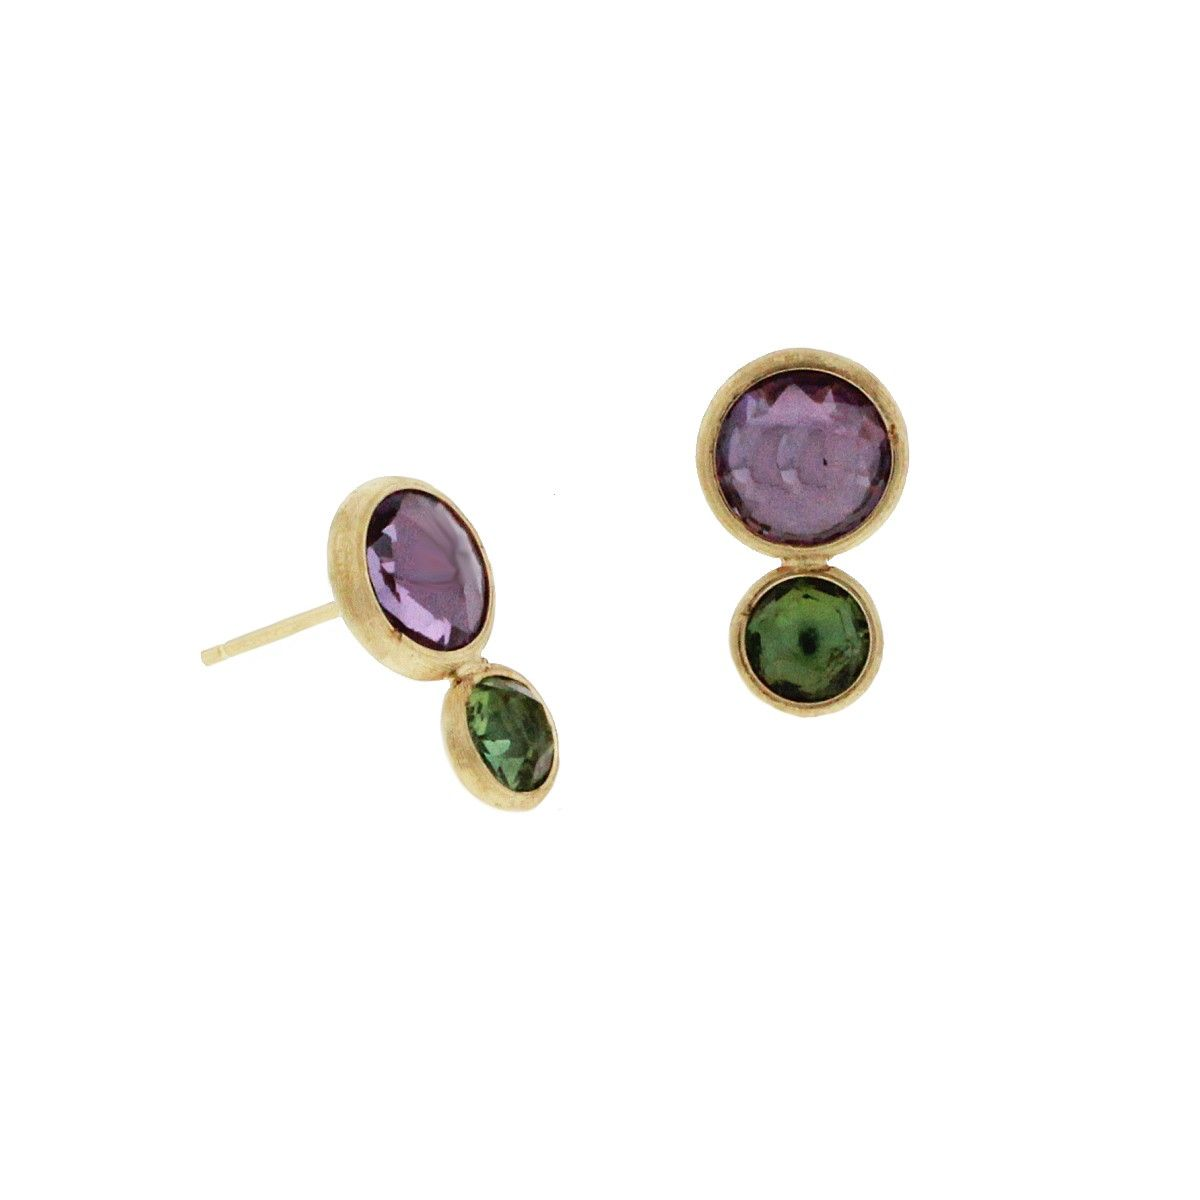 b1e96e818206 18K yellow gold amethyst and green tourmaline Jaipur stud earrings by  jewelry designer Marco Bicego